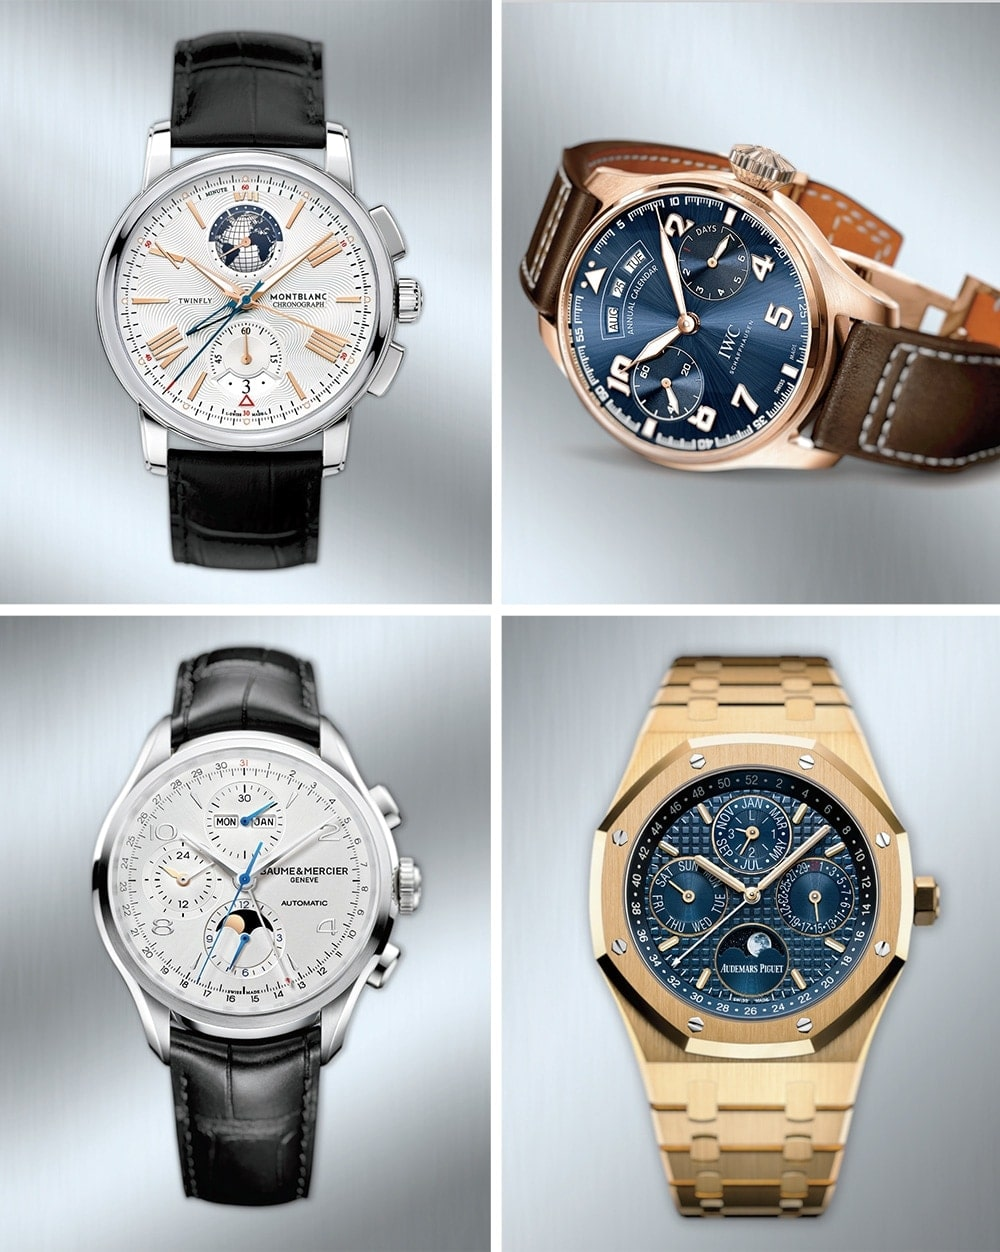 watches-3.jpg